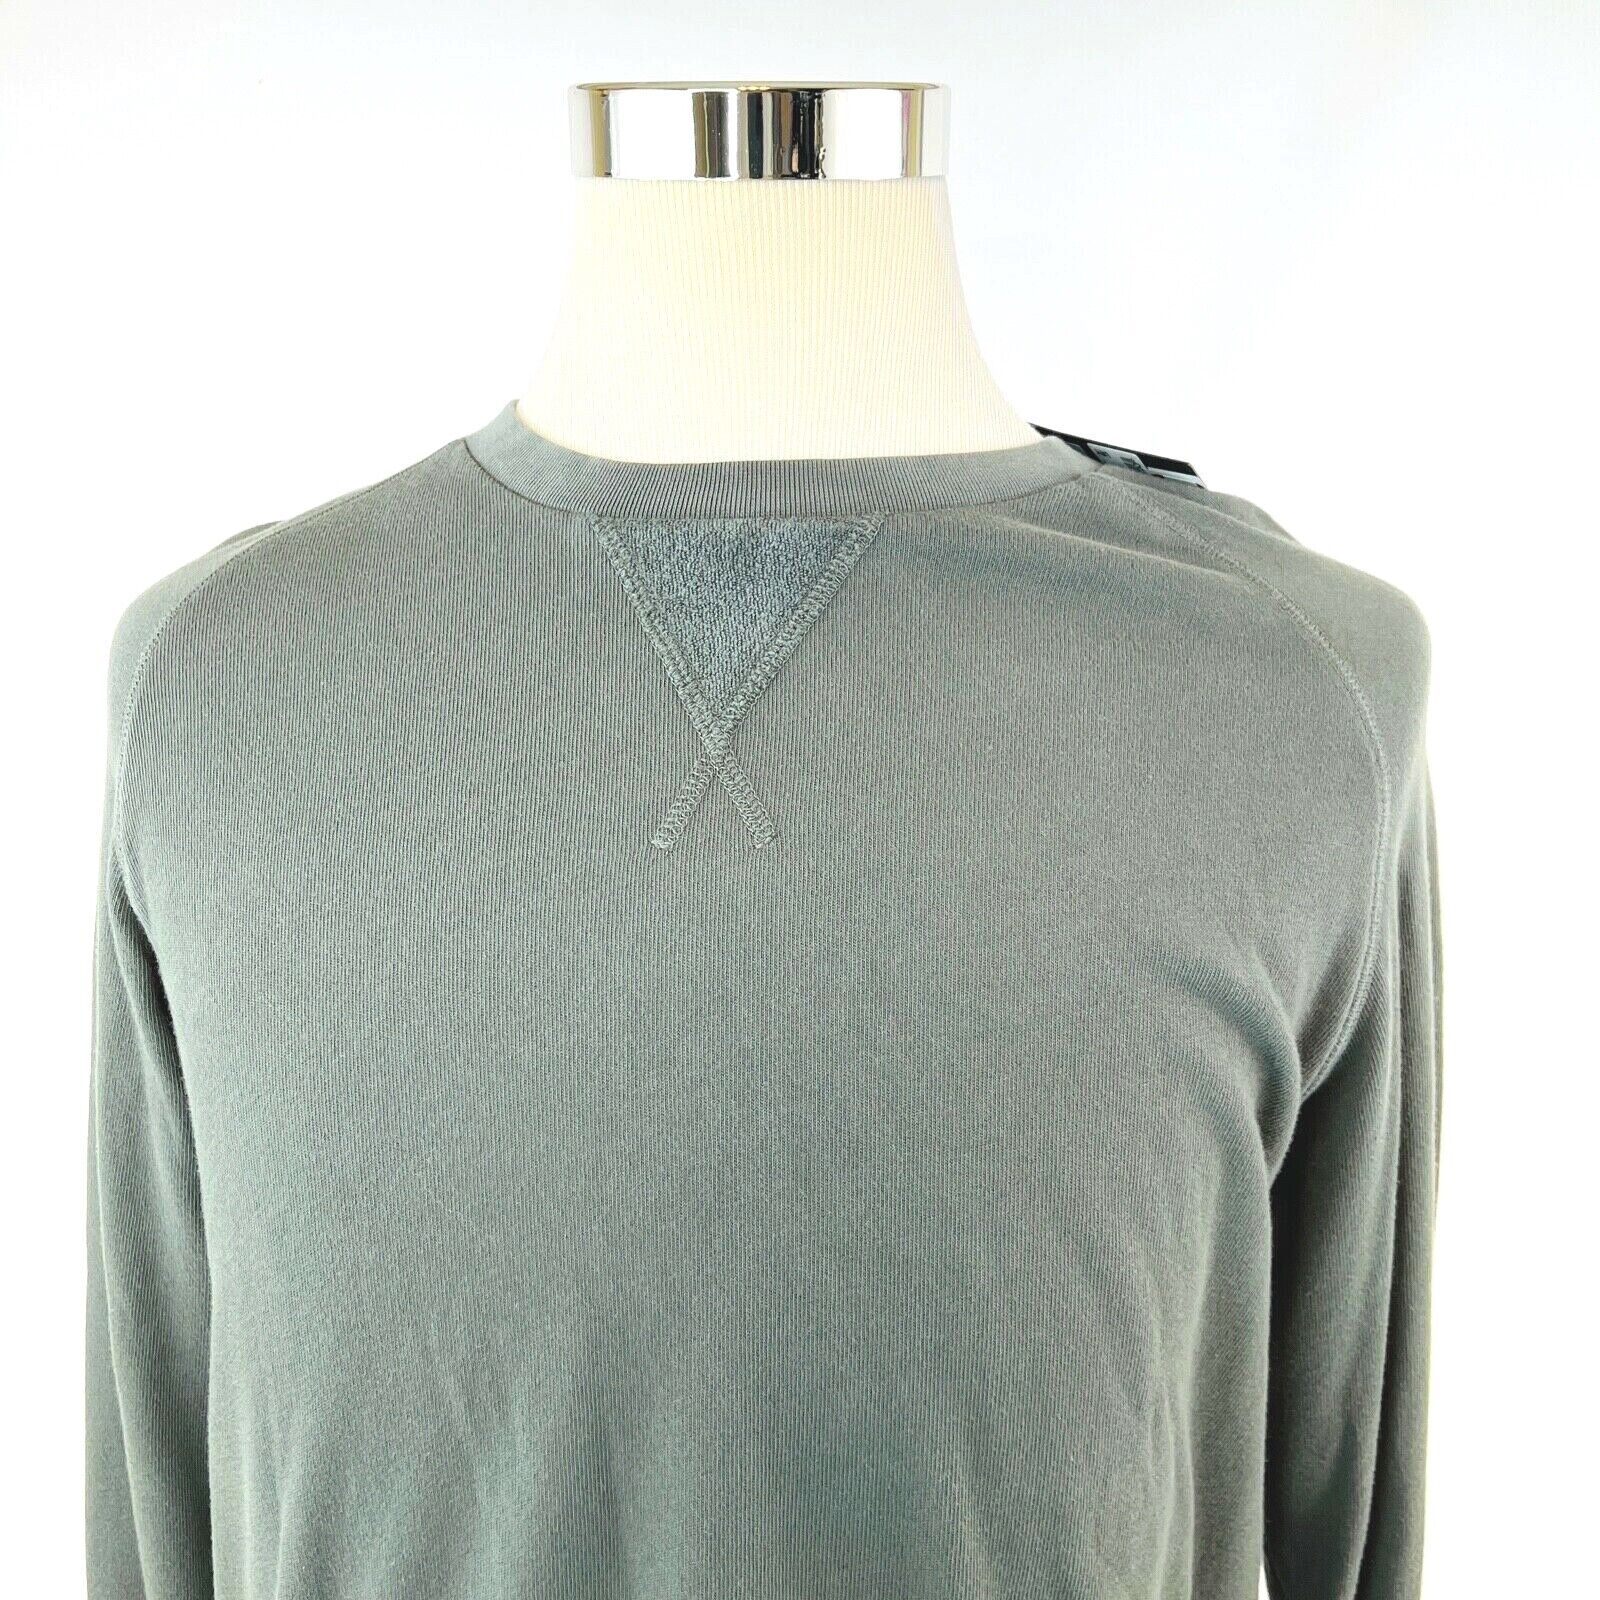 ATM Cotton Terry Garment Washed Crewneck Pullover Sweatshirt Mens Small NWT